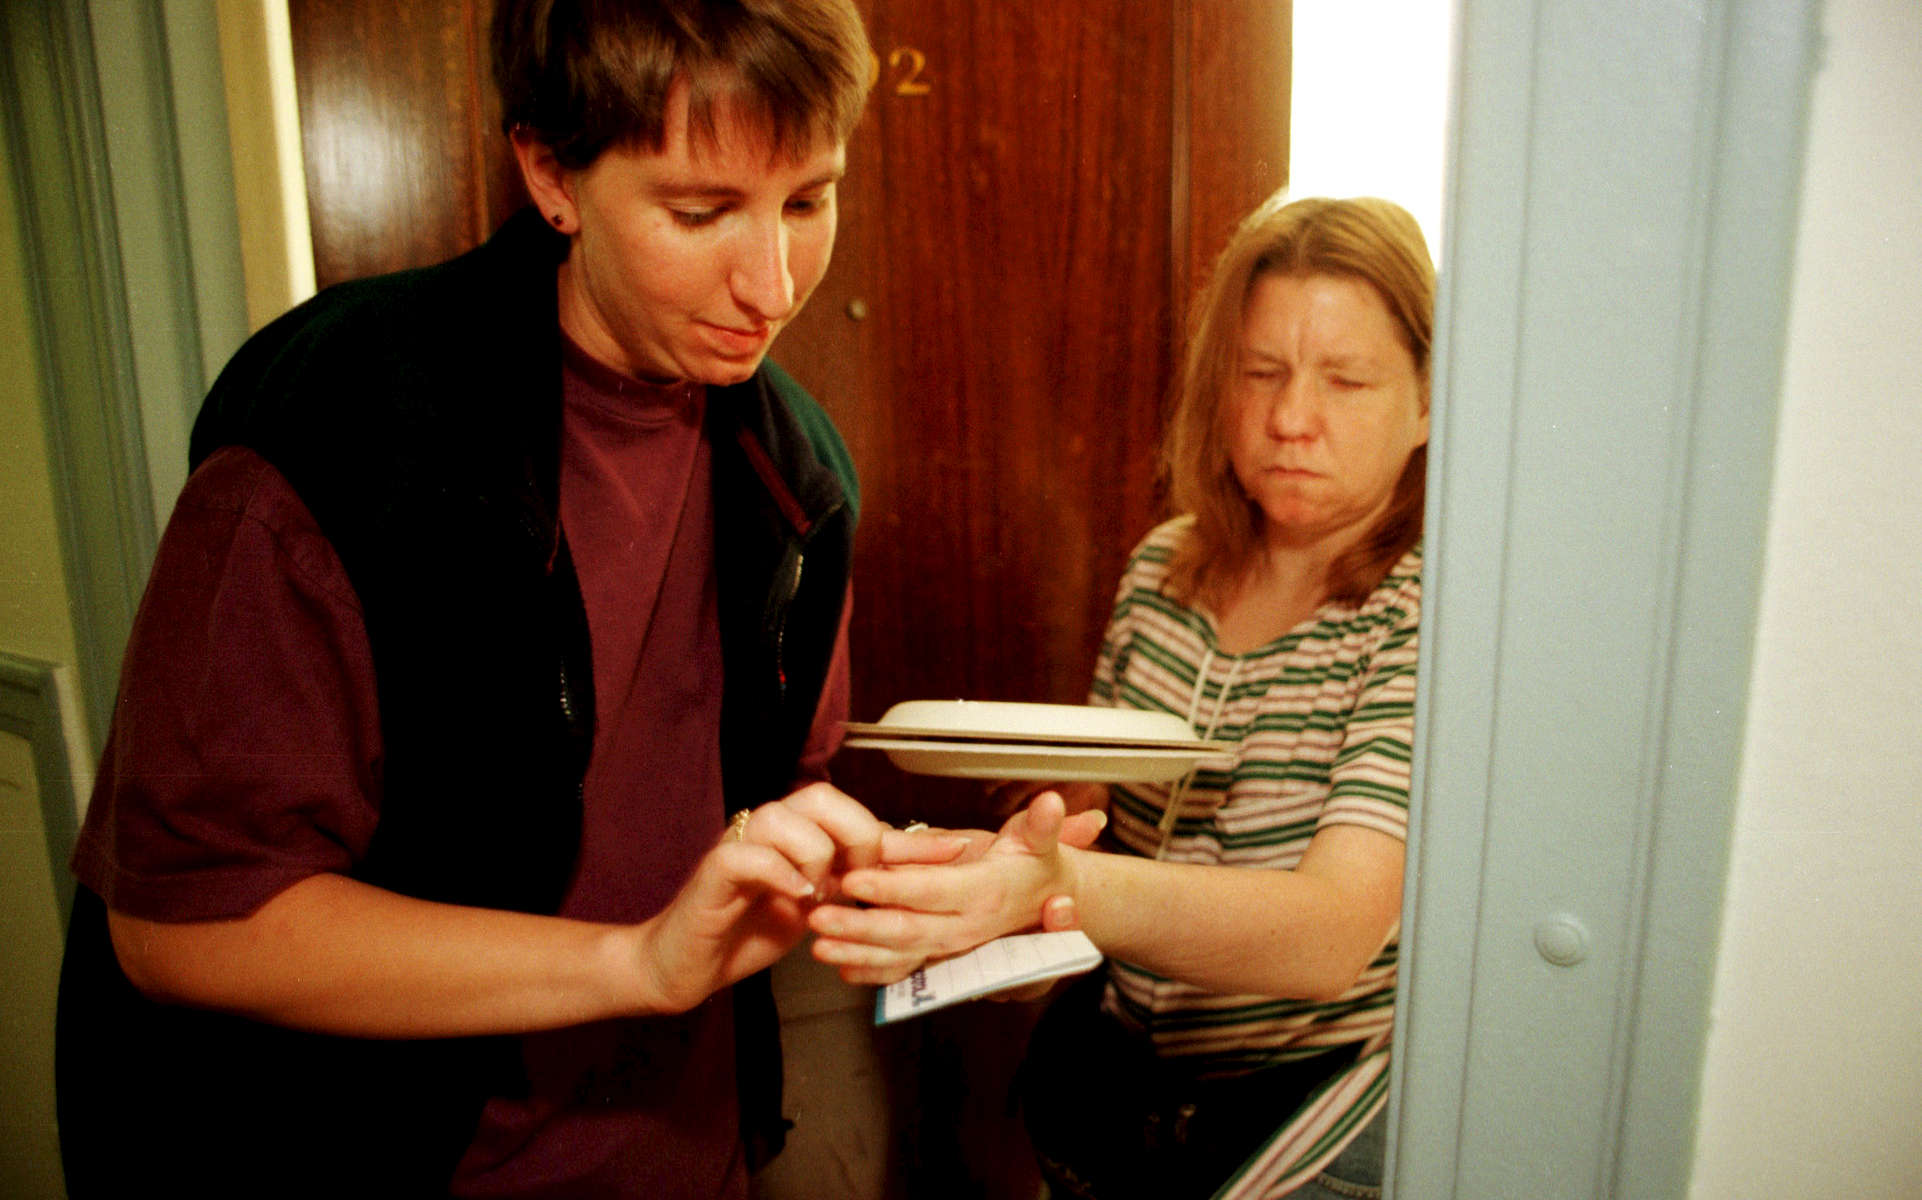 Pam Warren, fully deaf-blind,  recently  moved to Seattle.   Never having lived  independently, Pam became a prisoner in her own apartment.  She receives dinner from a concerned person who communicates by spelling words into her palm.